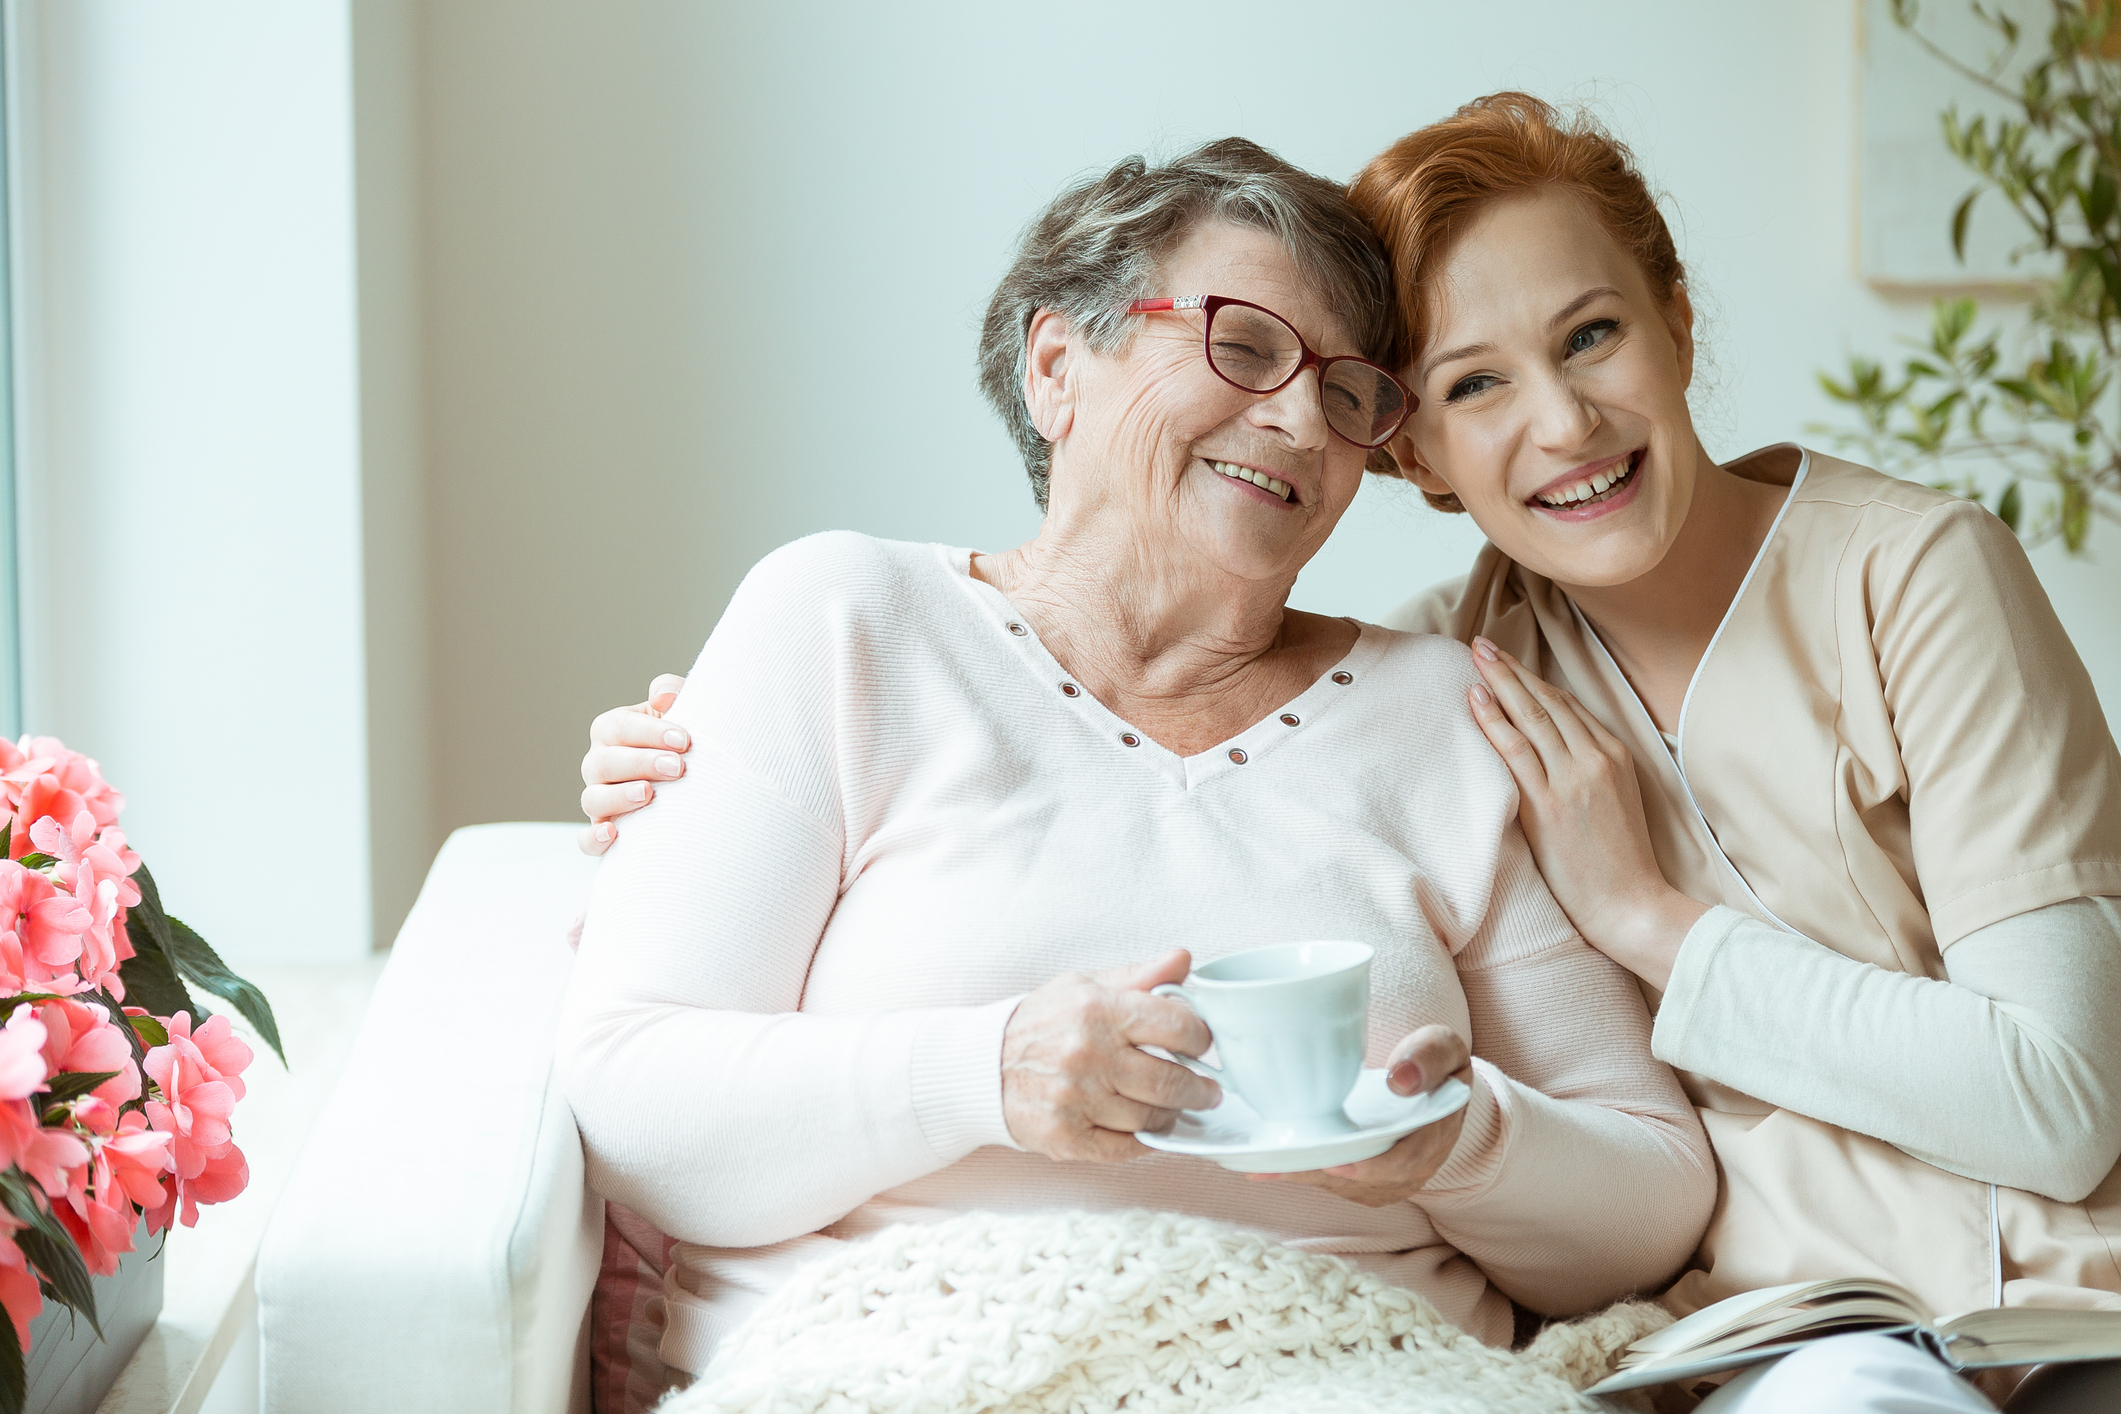 Nursing assistant embracing senior woman smiling and holding a tea cup